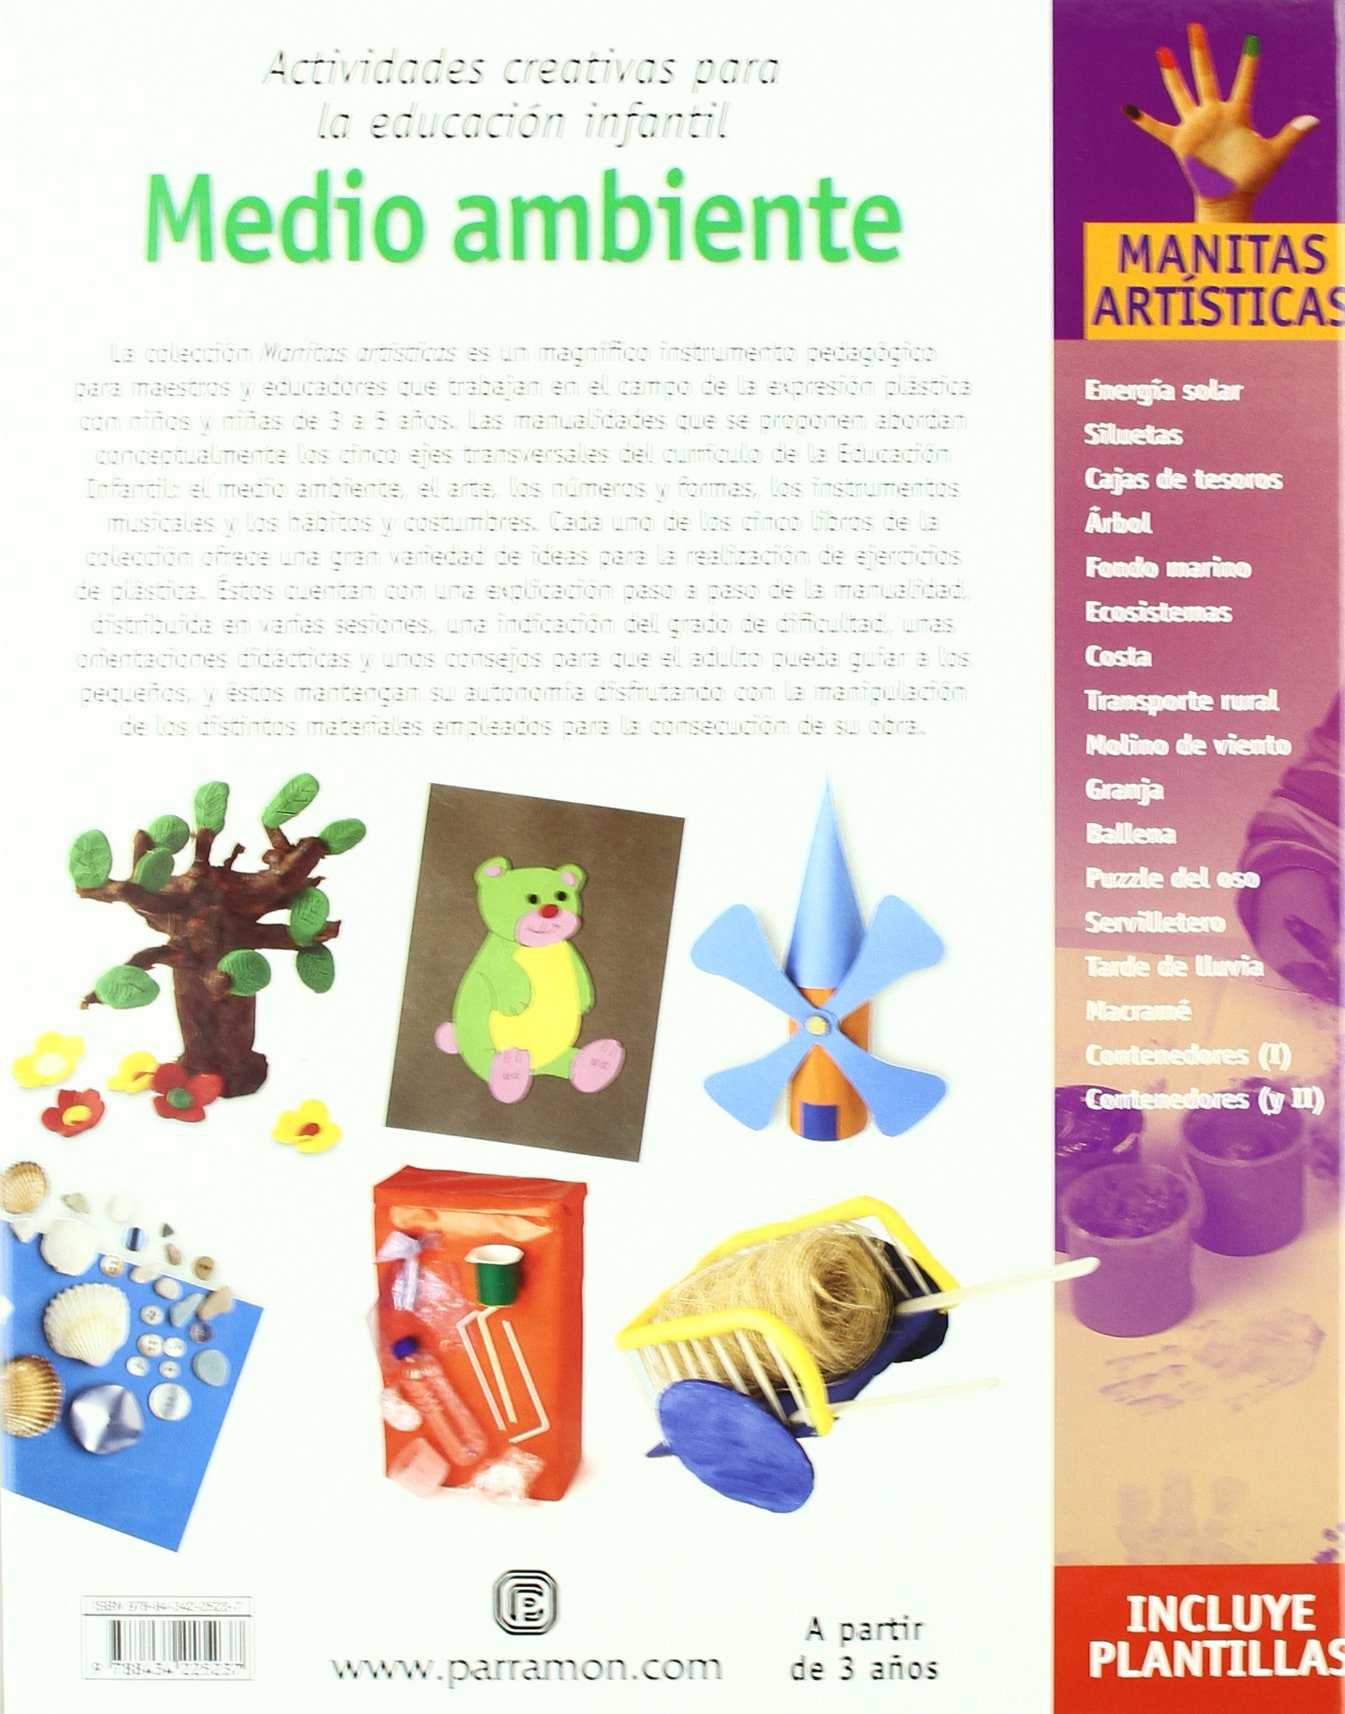 Medio Ambiente (Spanish Edition): Parramon: 9788434225237: Amazon.com: Books